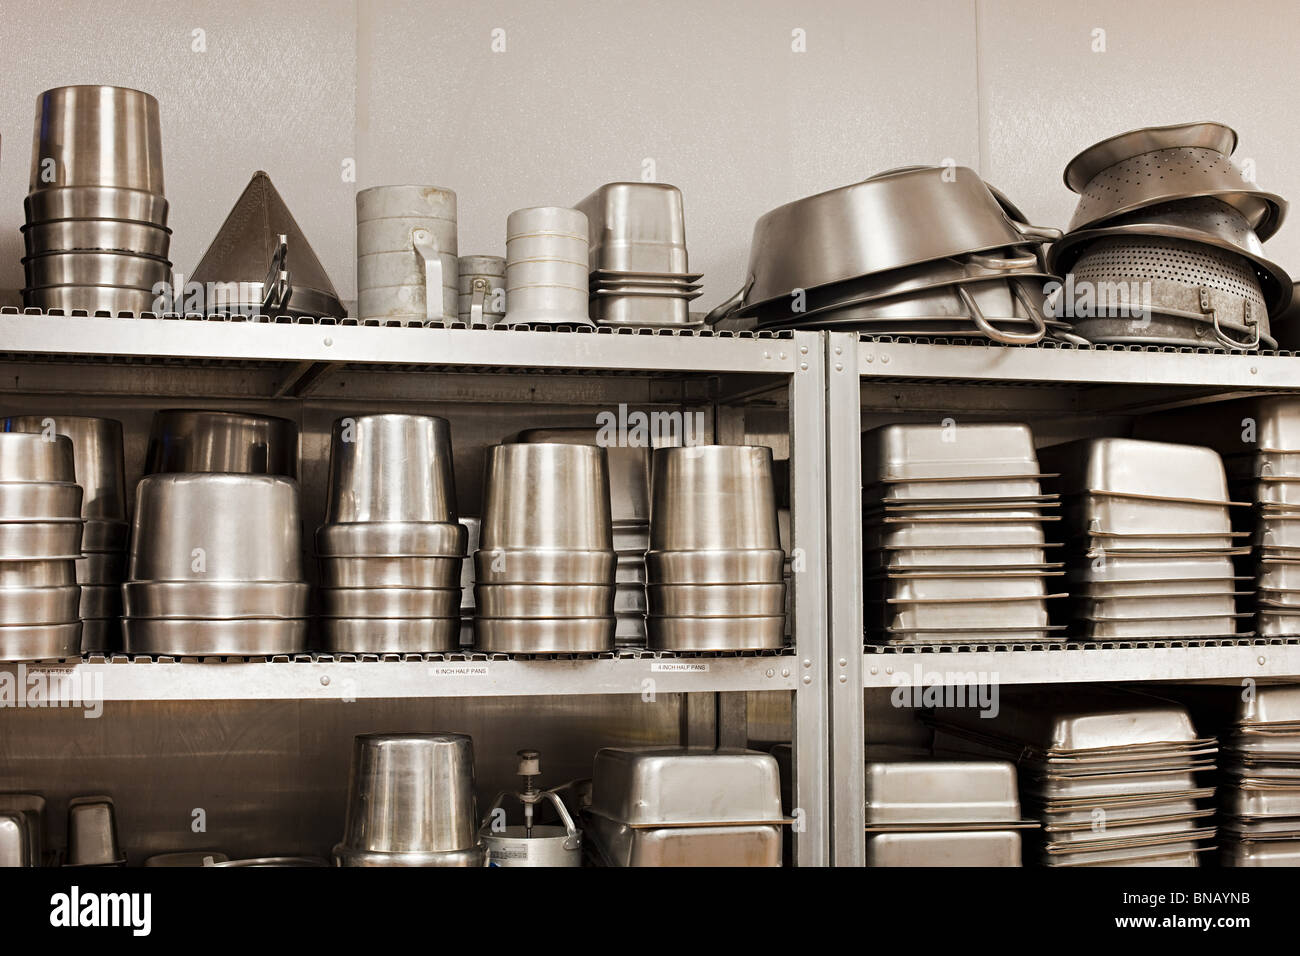 Kitchen utensils and baking tins, commercial kitchen - Stock Image